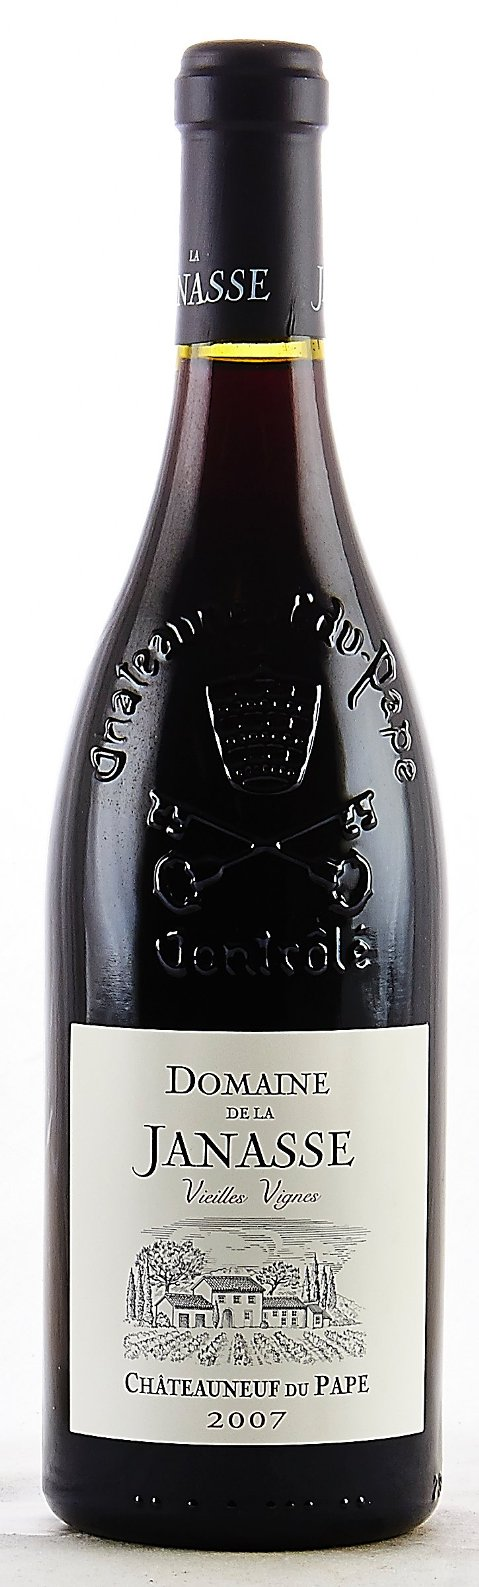 Domaine de la Janasse Chateauneuf du Pape Cuvee Vieilles Vignes 2011, 750ml (WA96) from The BPW - Merchants of rare and fine wines.